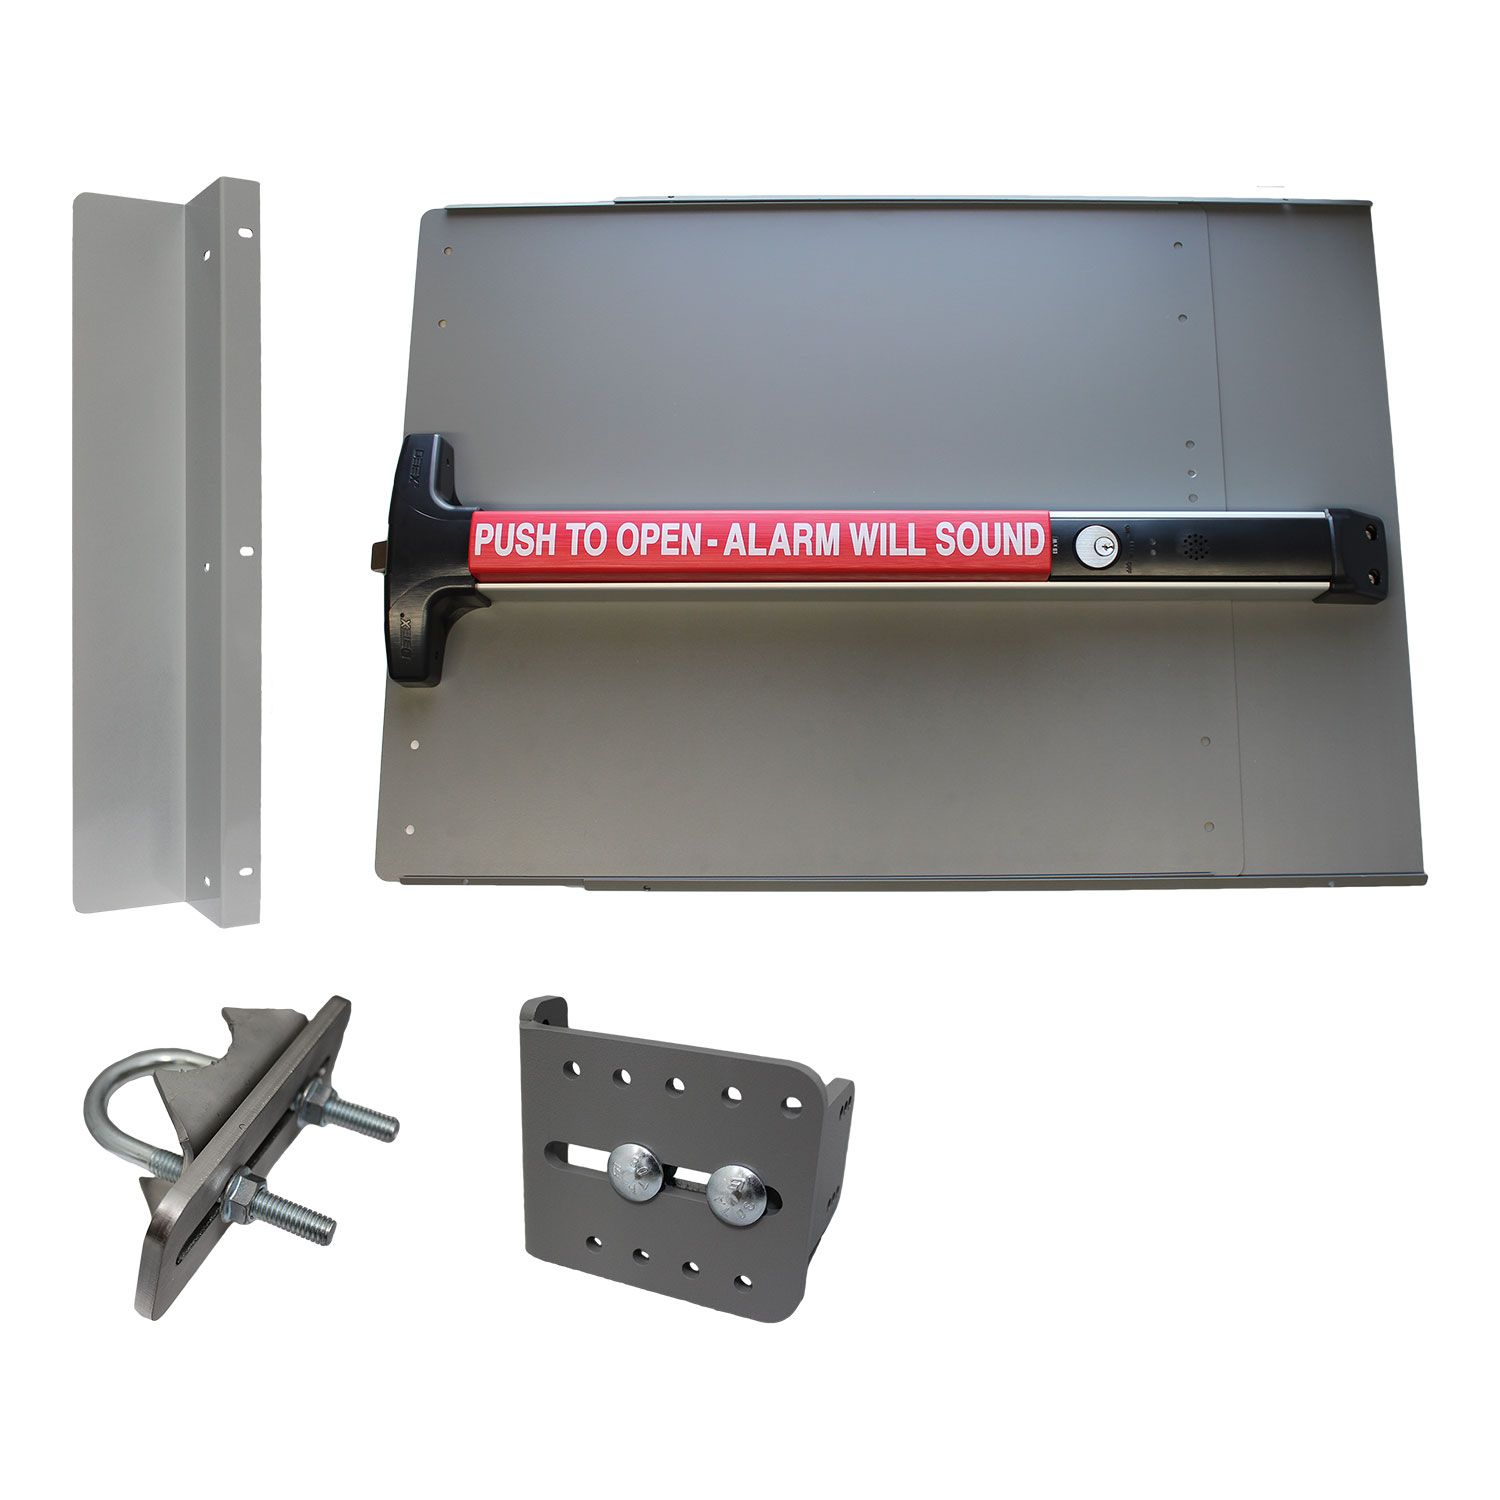 Lockey USA PS-DX Alarmed Edge Value Panic Bar Kit for Gates